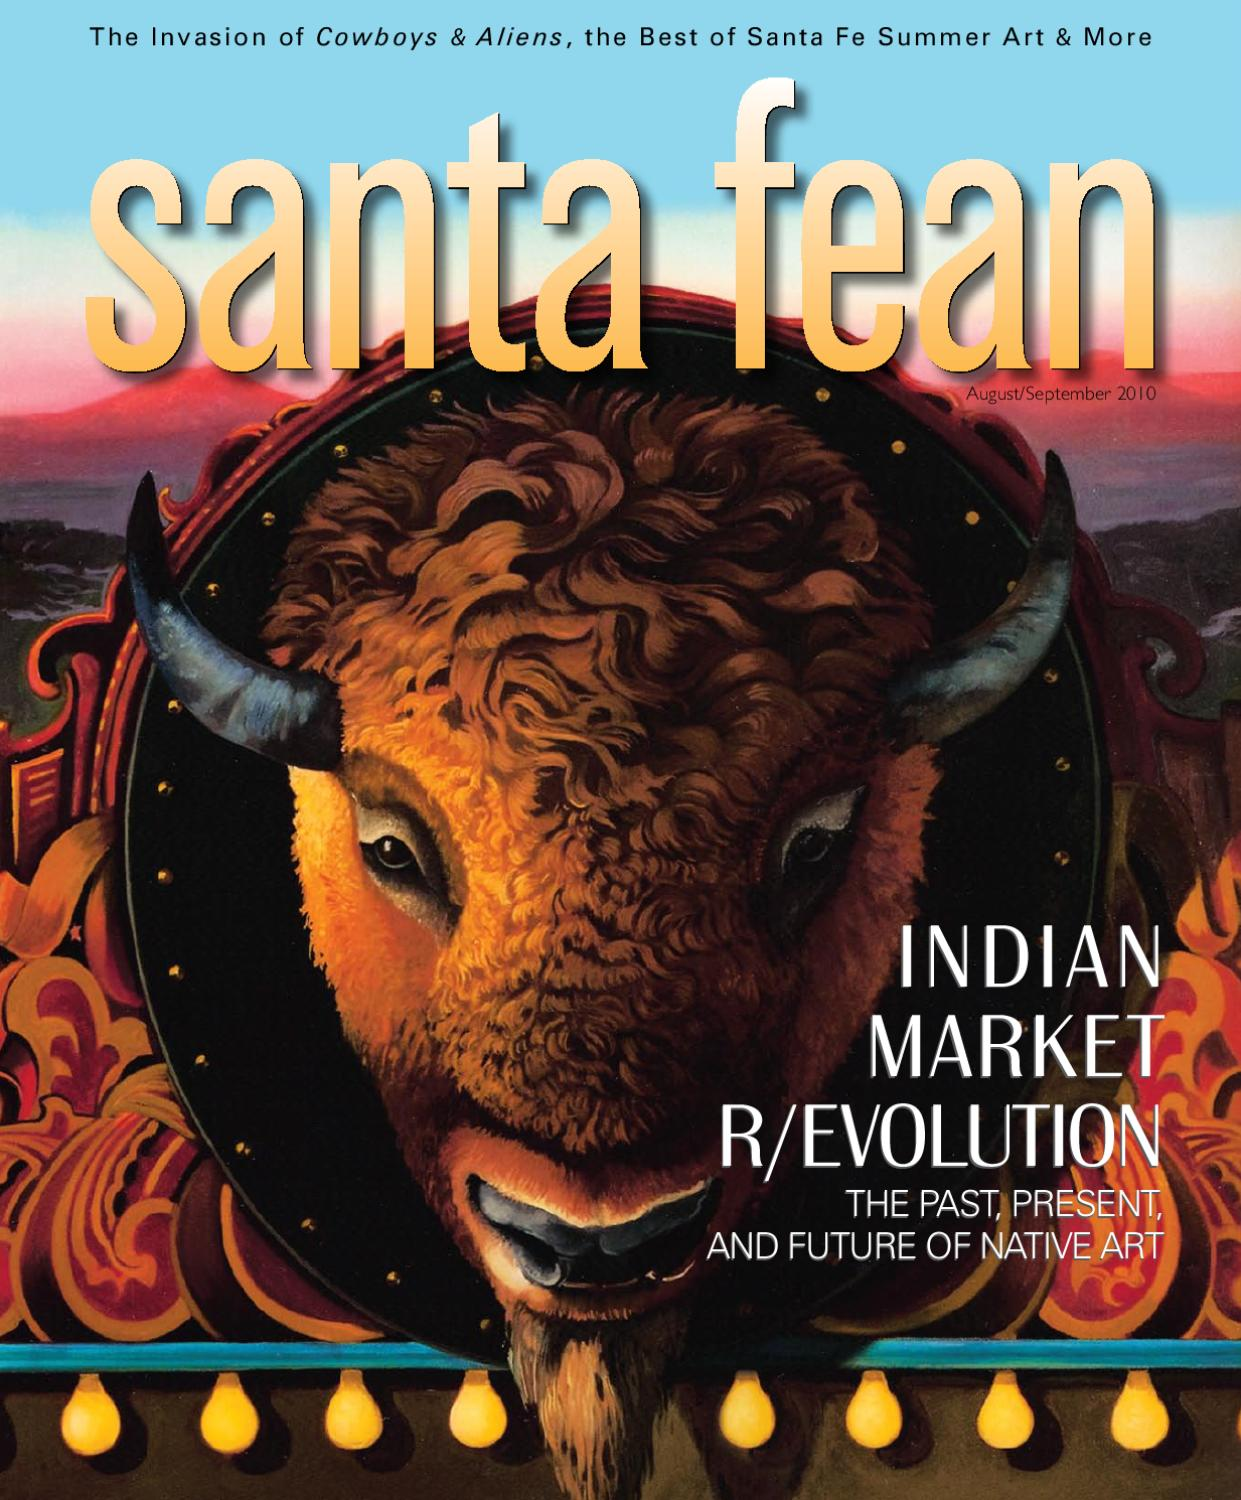 Santa Fean Aug Sep2010 Linked By Bella Media Group Issuu